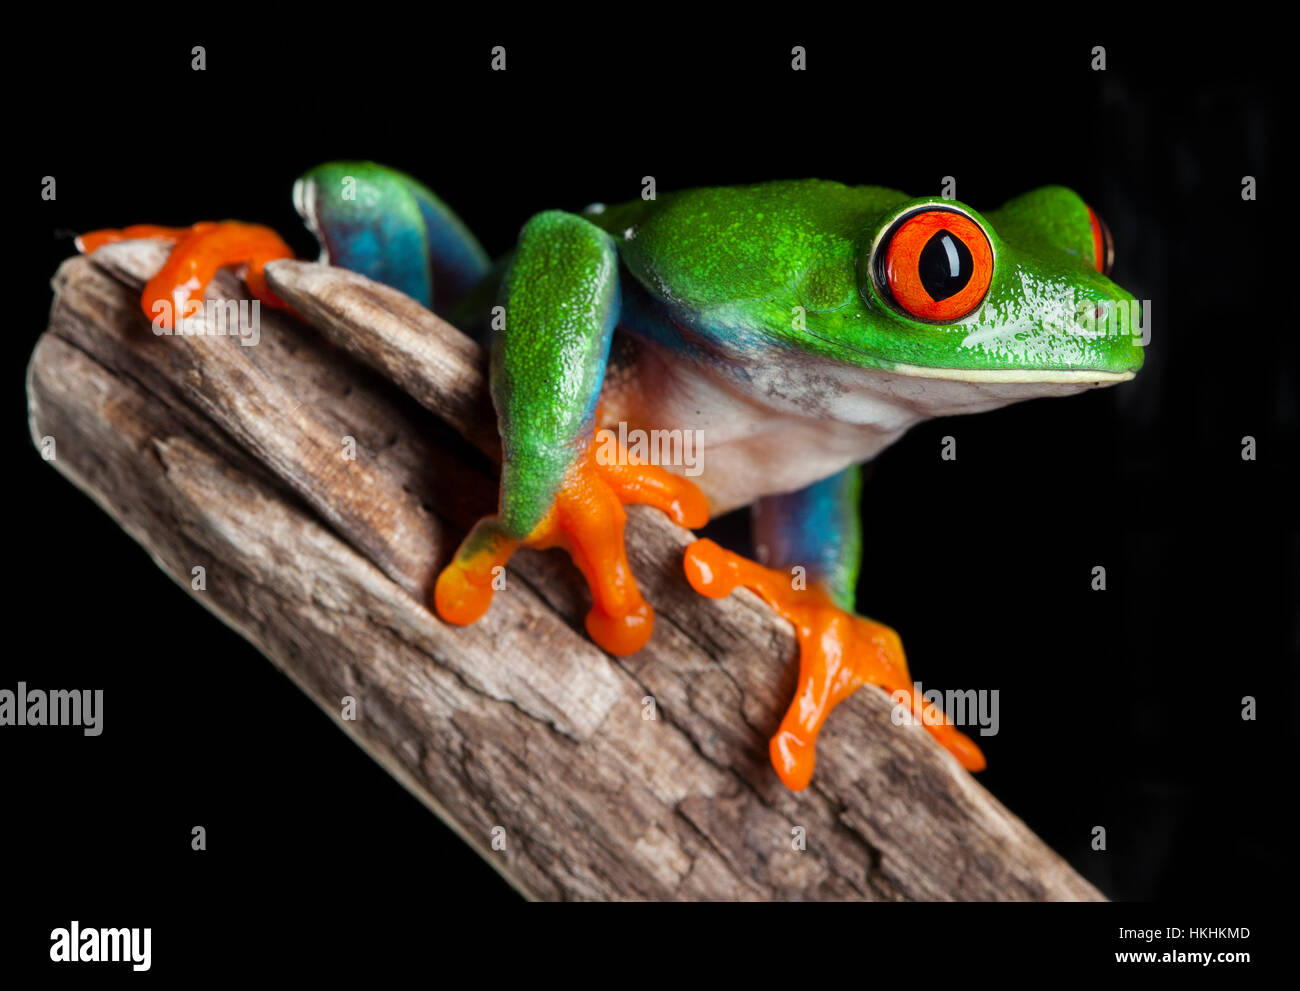 Red Eye frog in studio with dark background - Stock Image